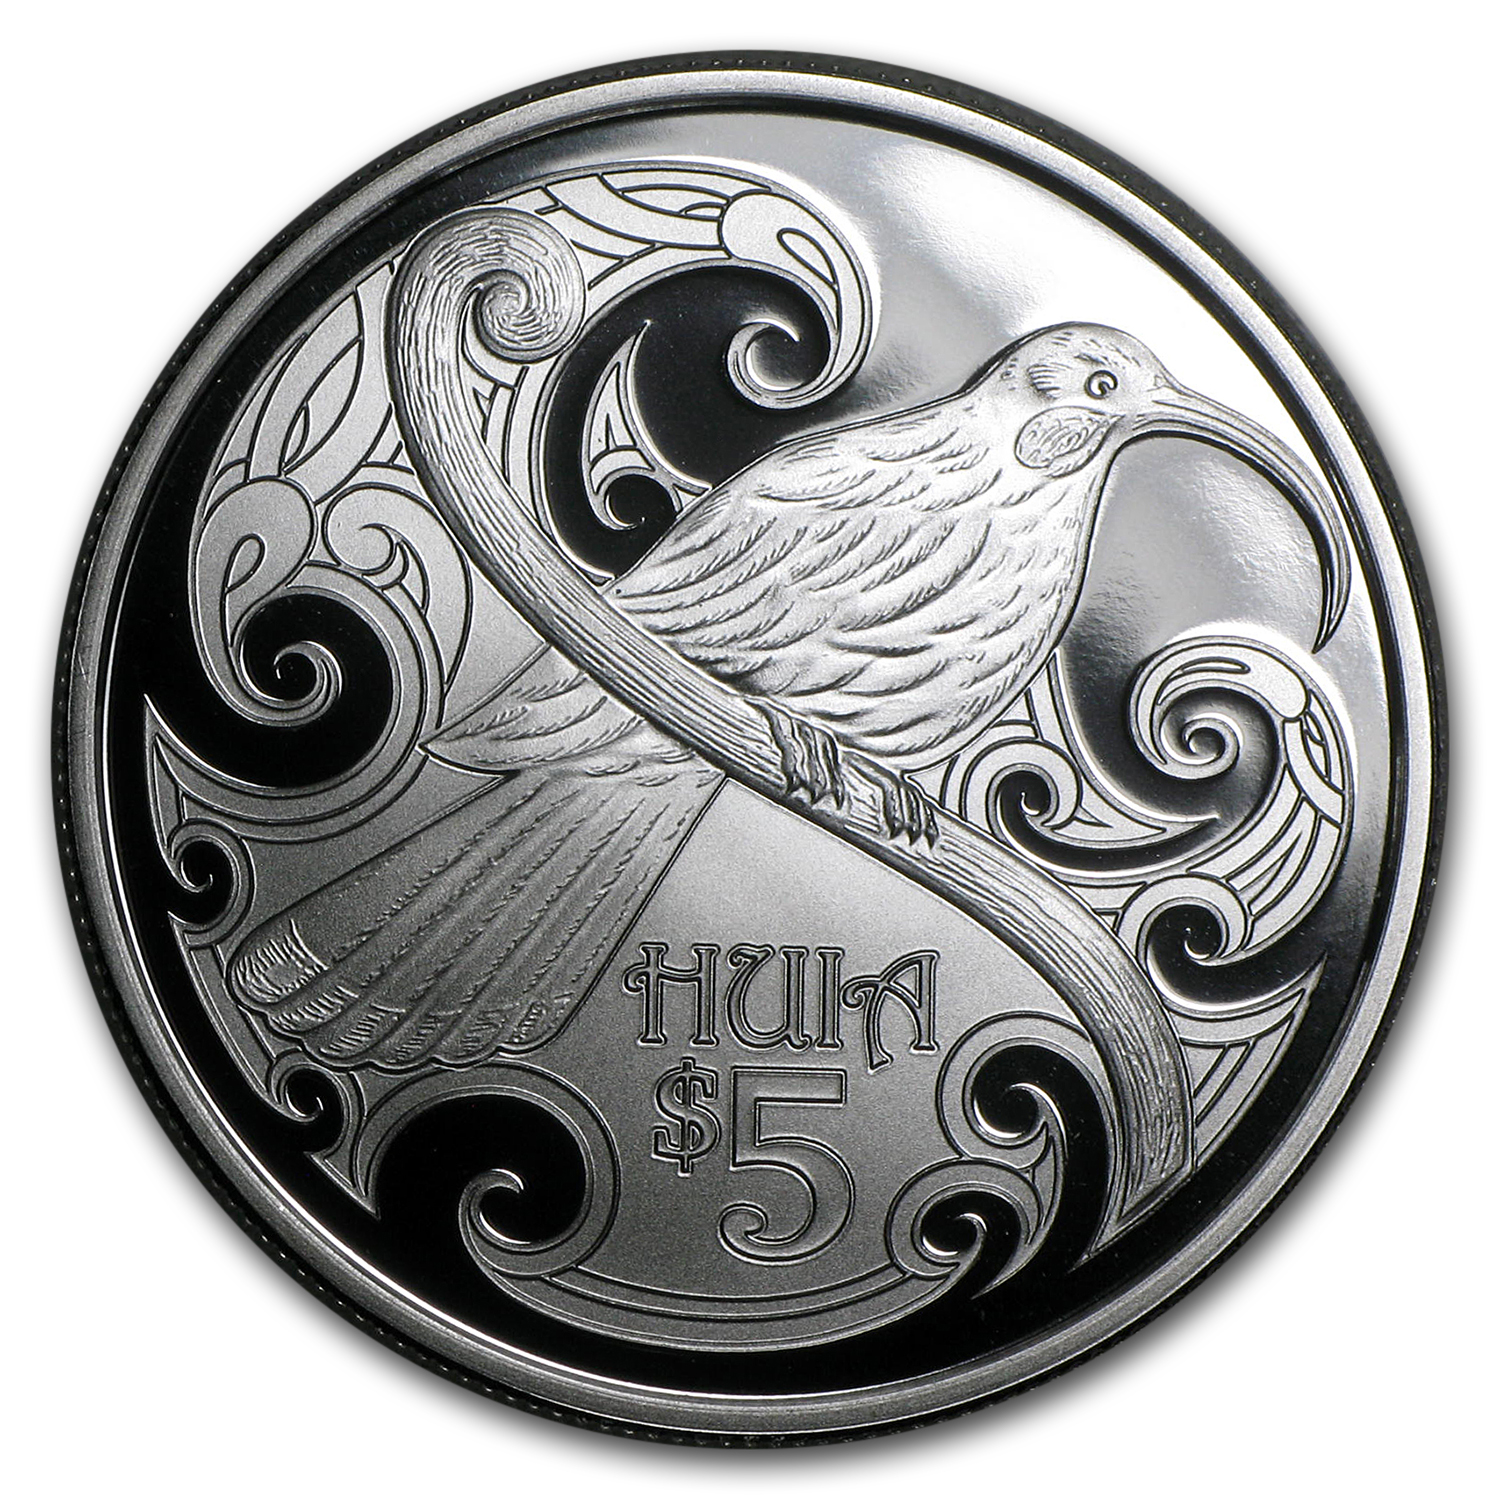 2015 New Zealand 1 oz Silver $5 Annual Coin Huia